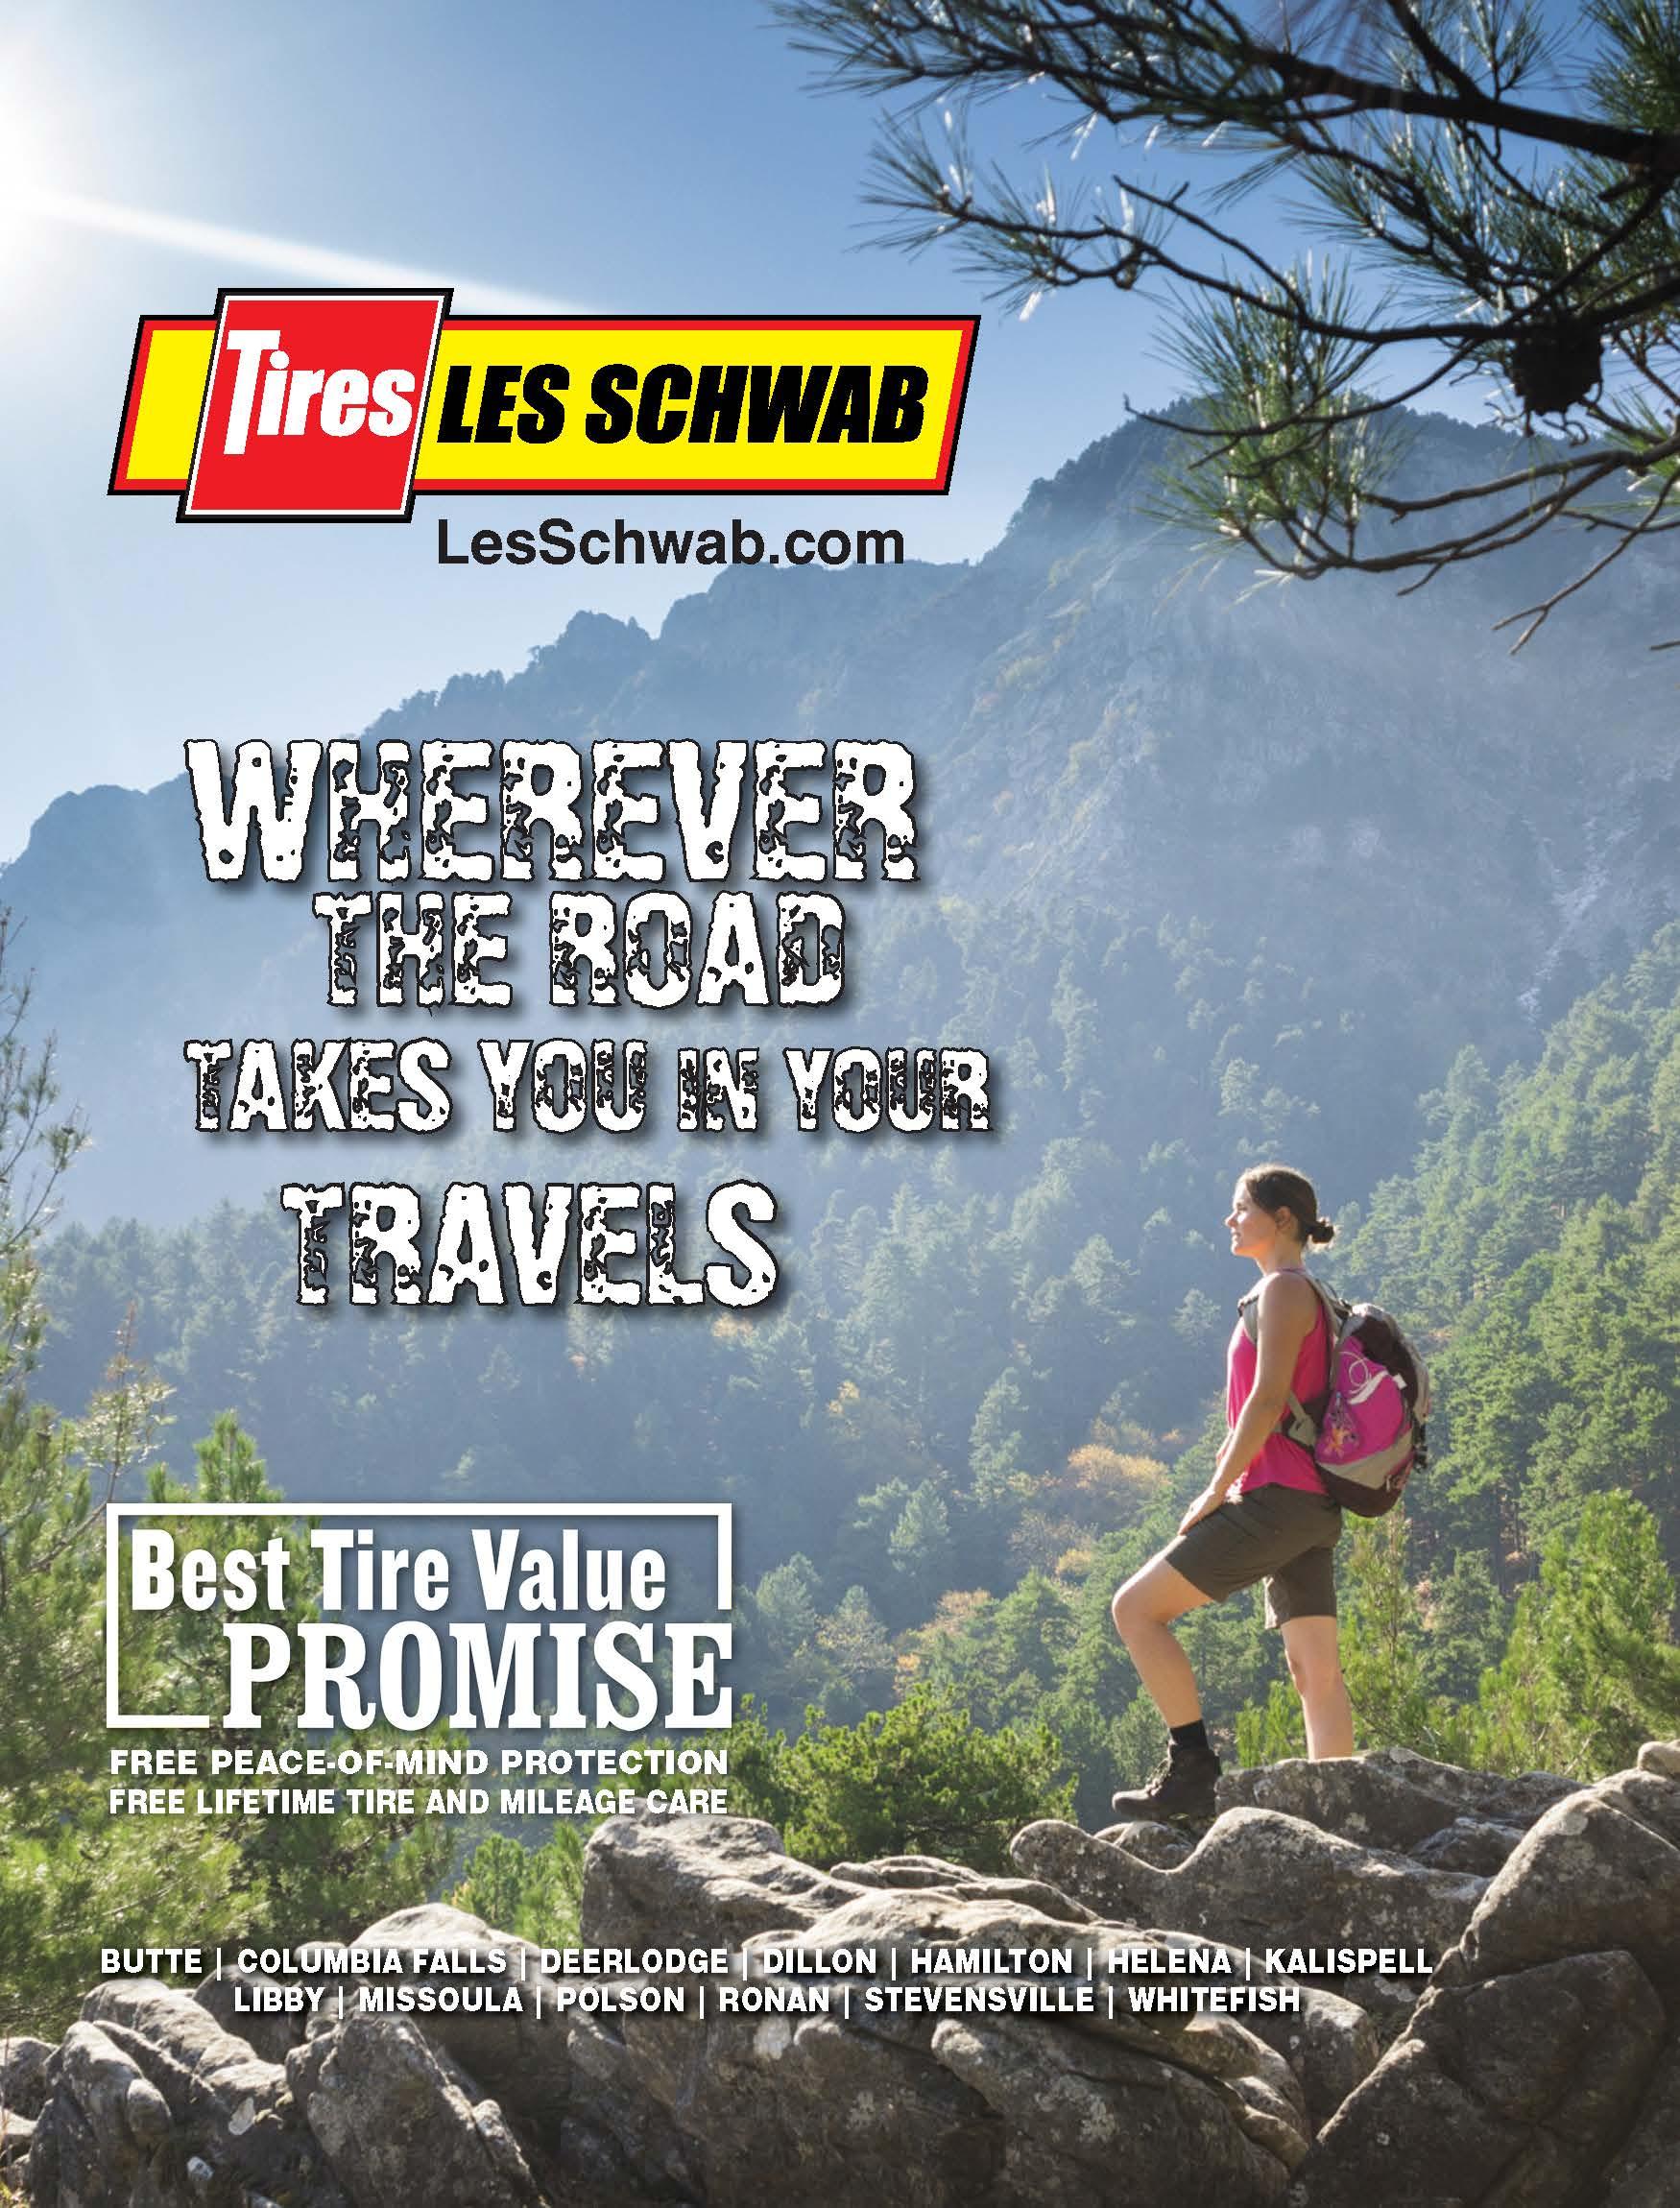 Wherever the road takes you